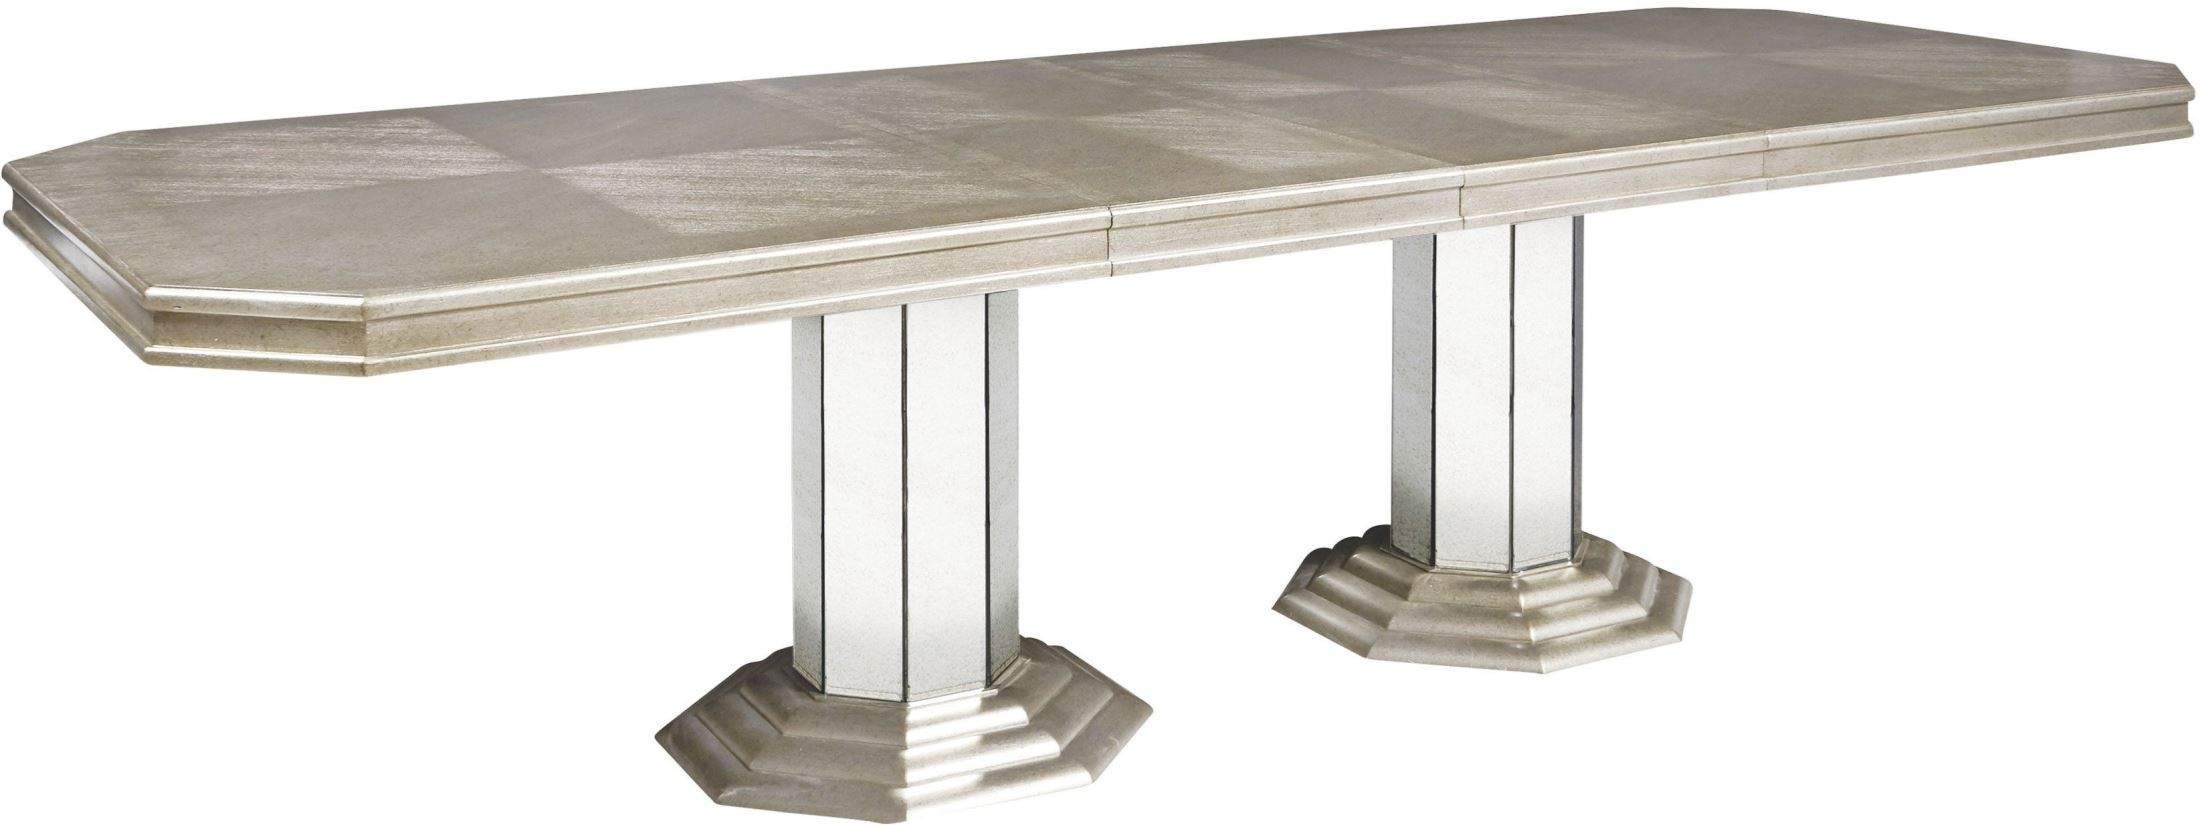 Couture silver rectangular extendable double pedestal dining table from pulaski coleman furniture - Pedestal dining table rectangular ...